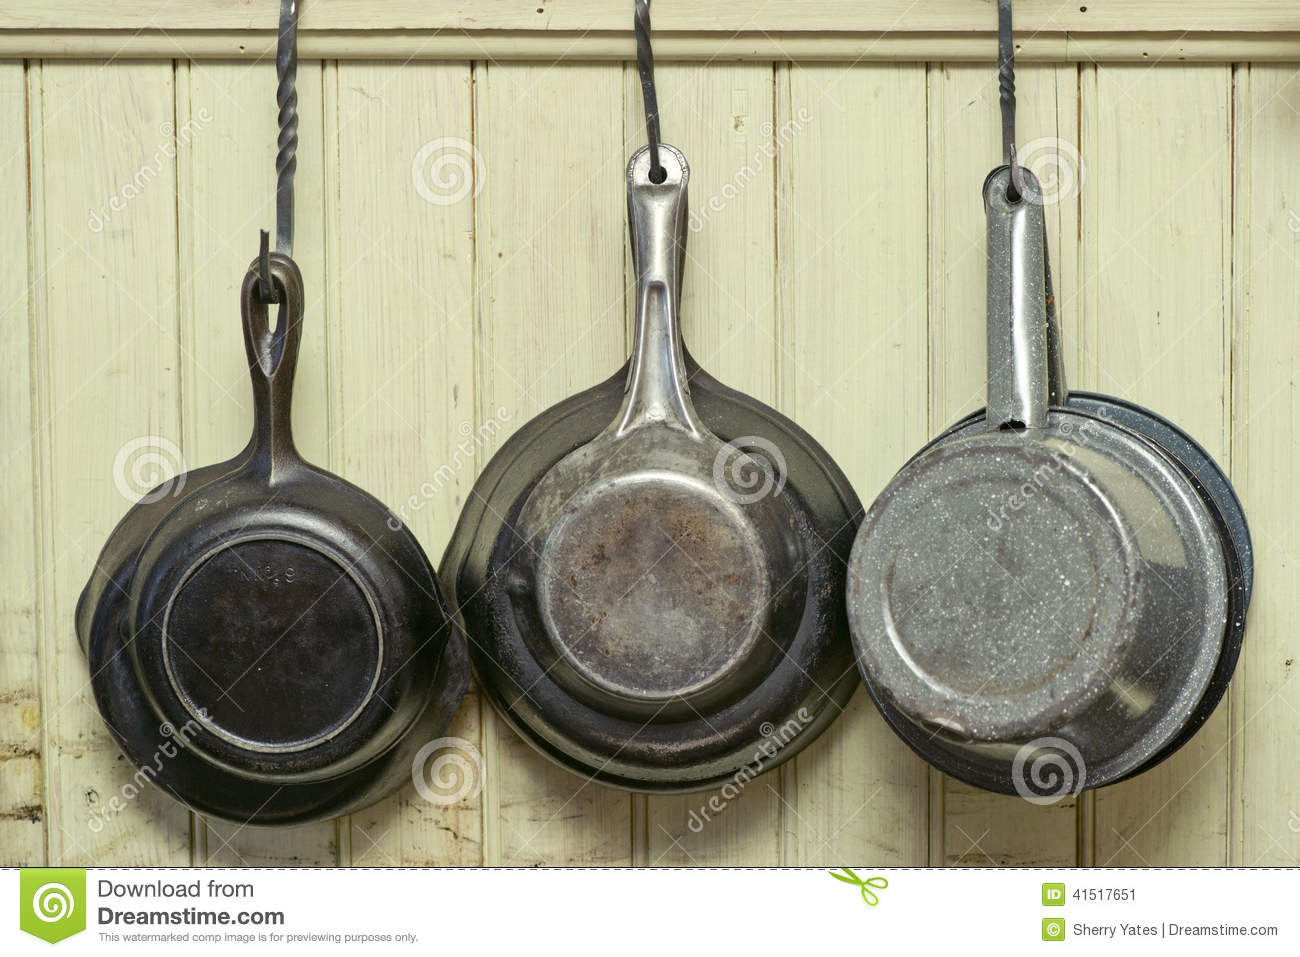 Antique Cookware Stock Photo - Image: 41517651